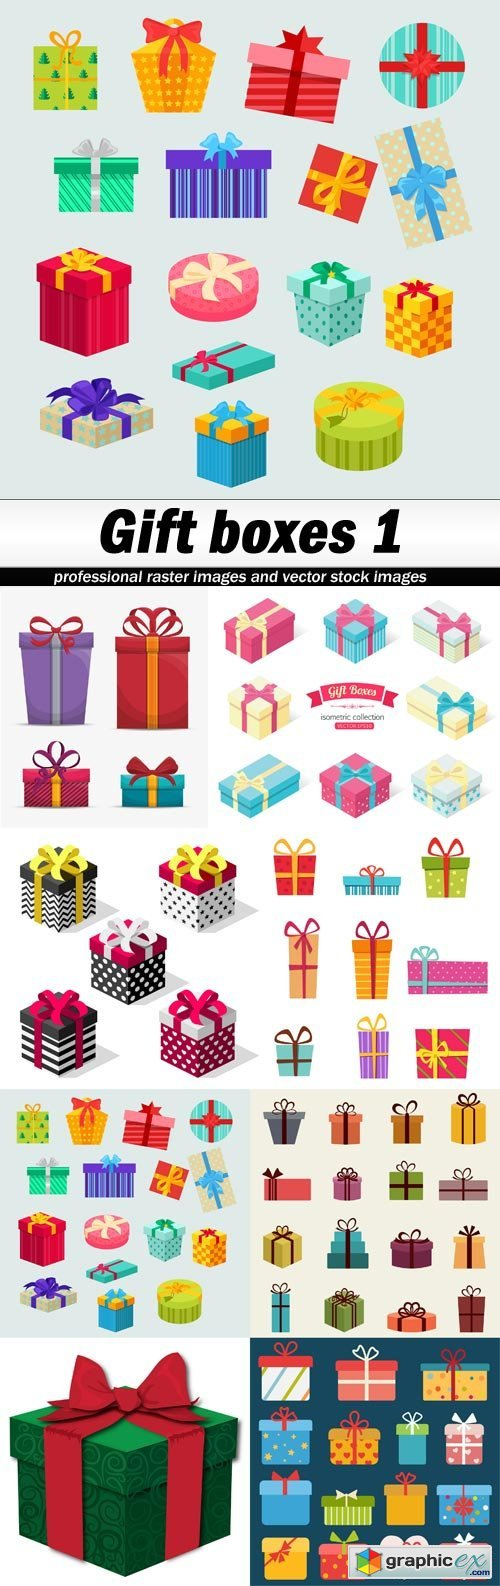 Gift boxes 1 - 8 EPS